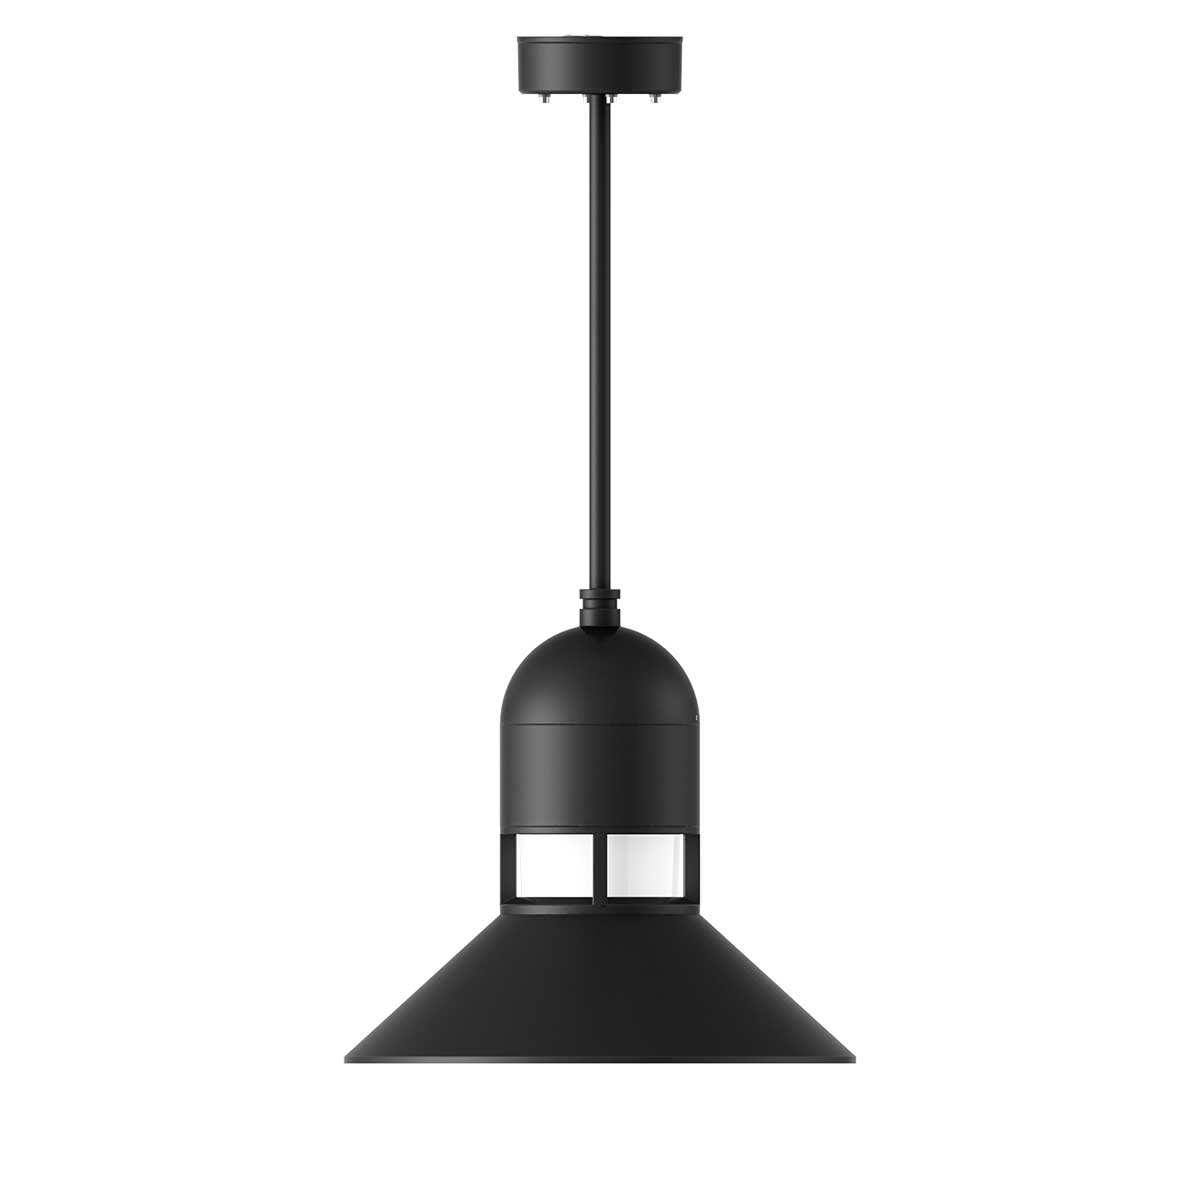 Columbus medium shade pendant prod 1200x1200